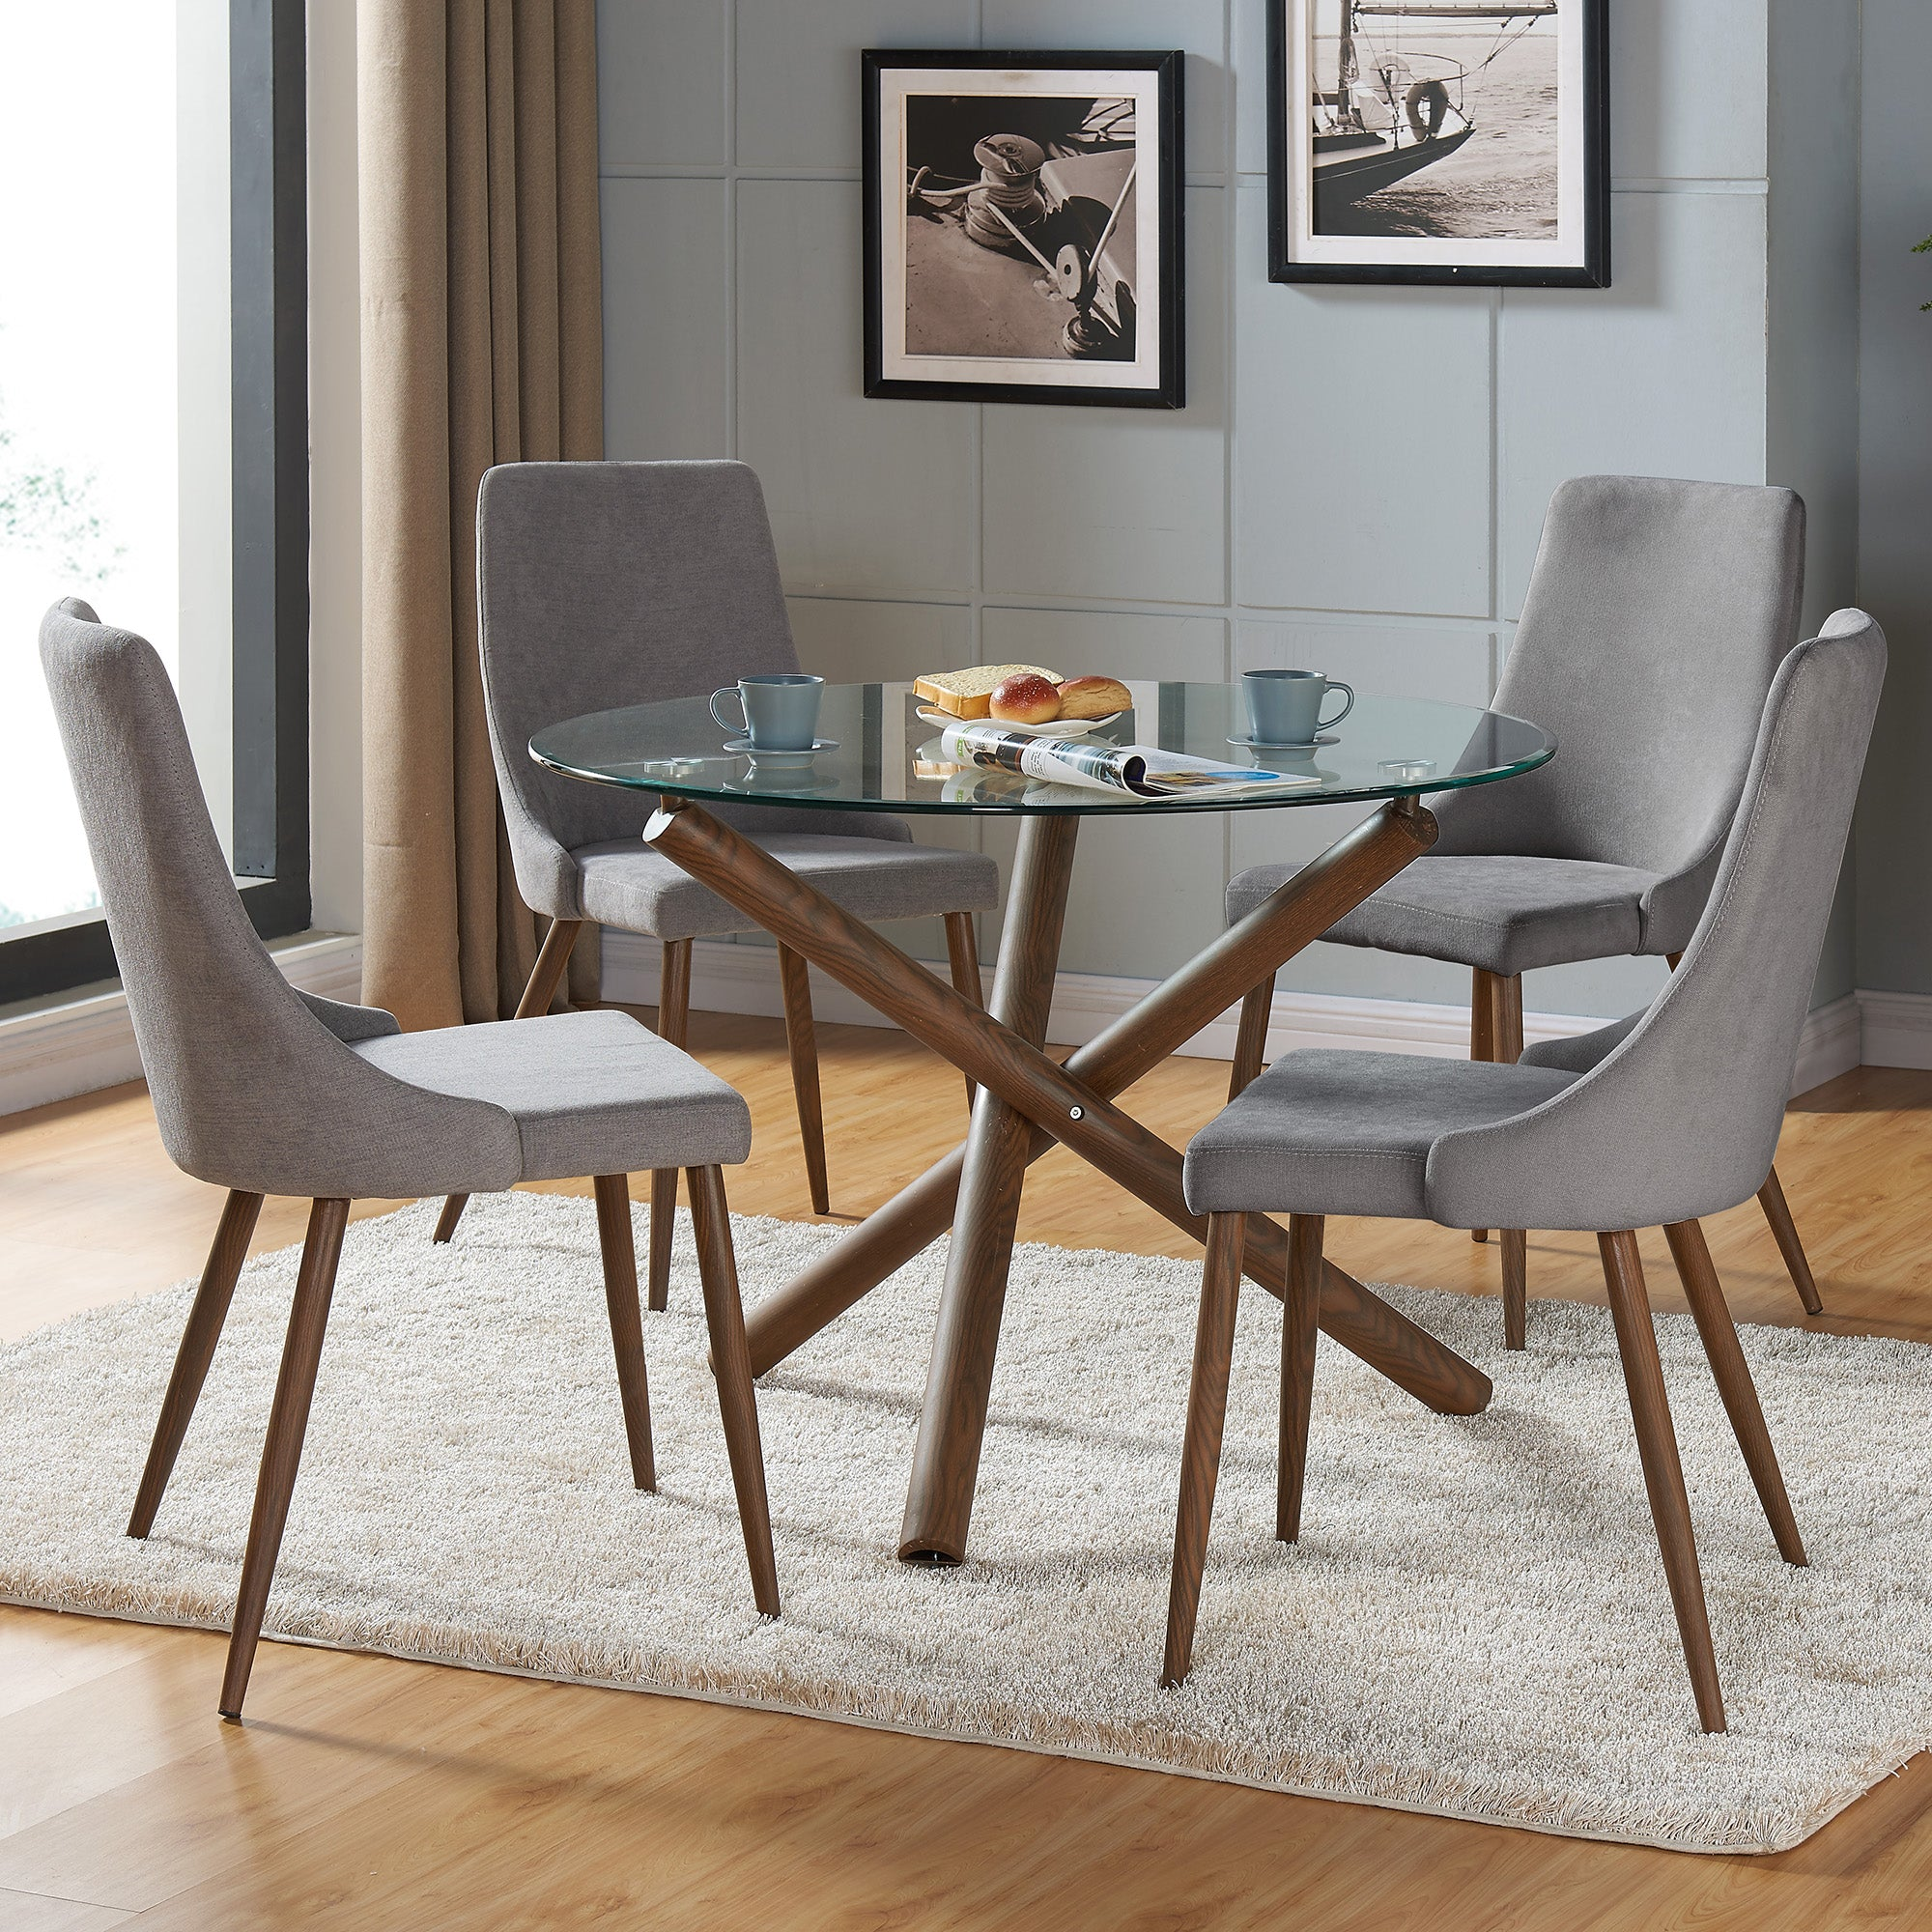 Alen / Aido 5 Pc Dining Set (Walnut / Grey)